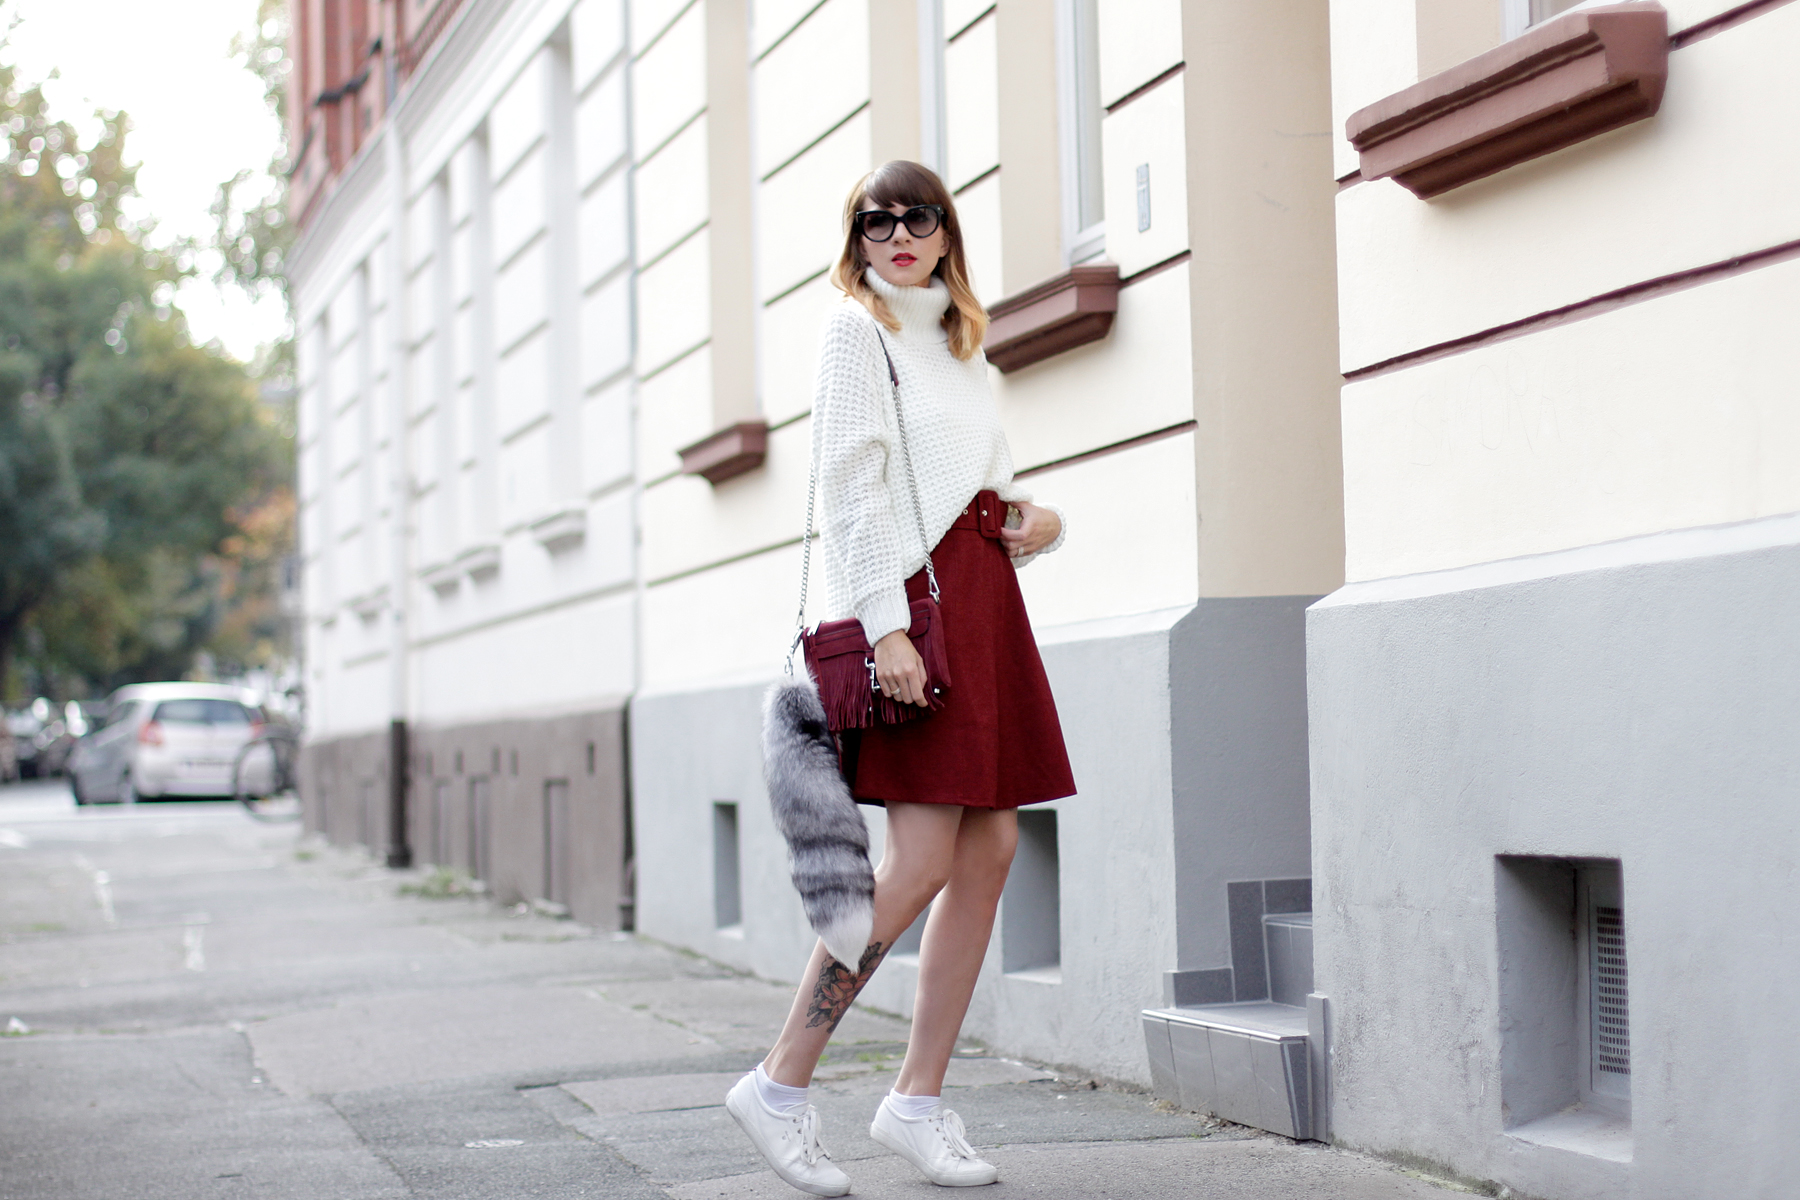 edited the label red burgundy a line skirt seventies soft white knit rebecca minkoff wine bag cross body cats & dogs fashionblogger ricarda schernus blog berlin hannover düsseldorf 6